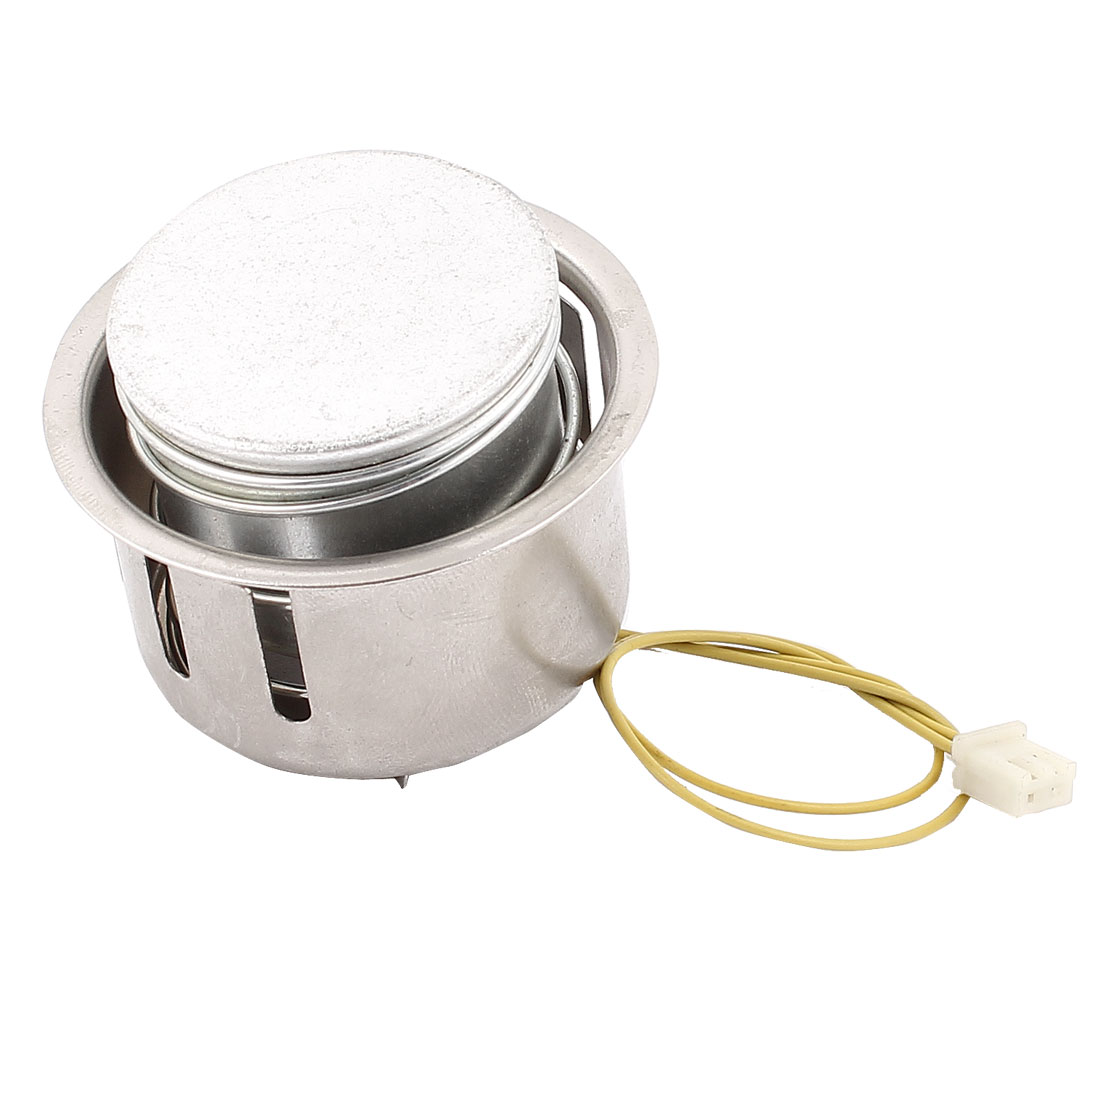 Temperature Limiter 2 Wires Electric Rice Cooker Magnetic Center Thermostat